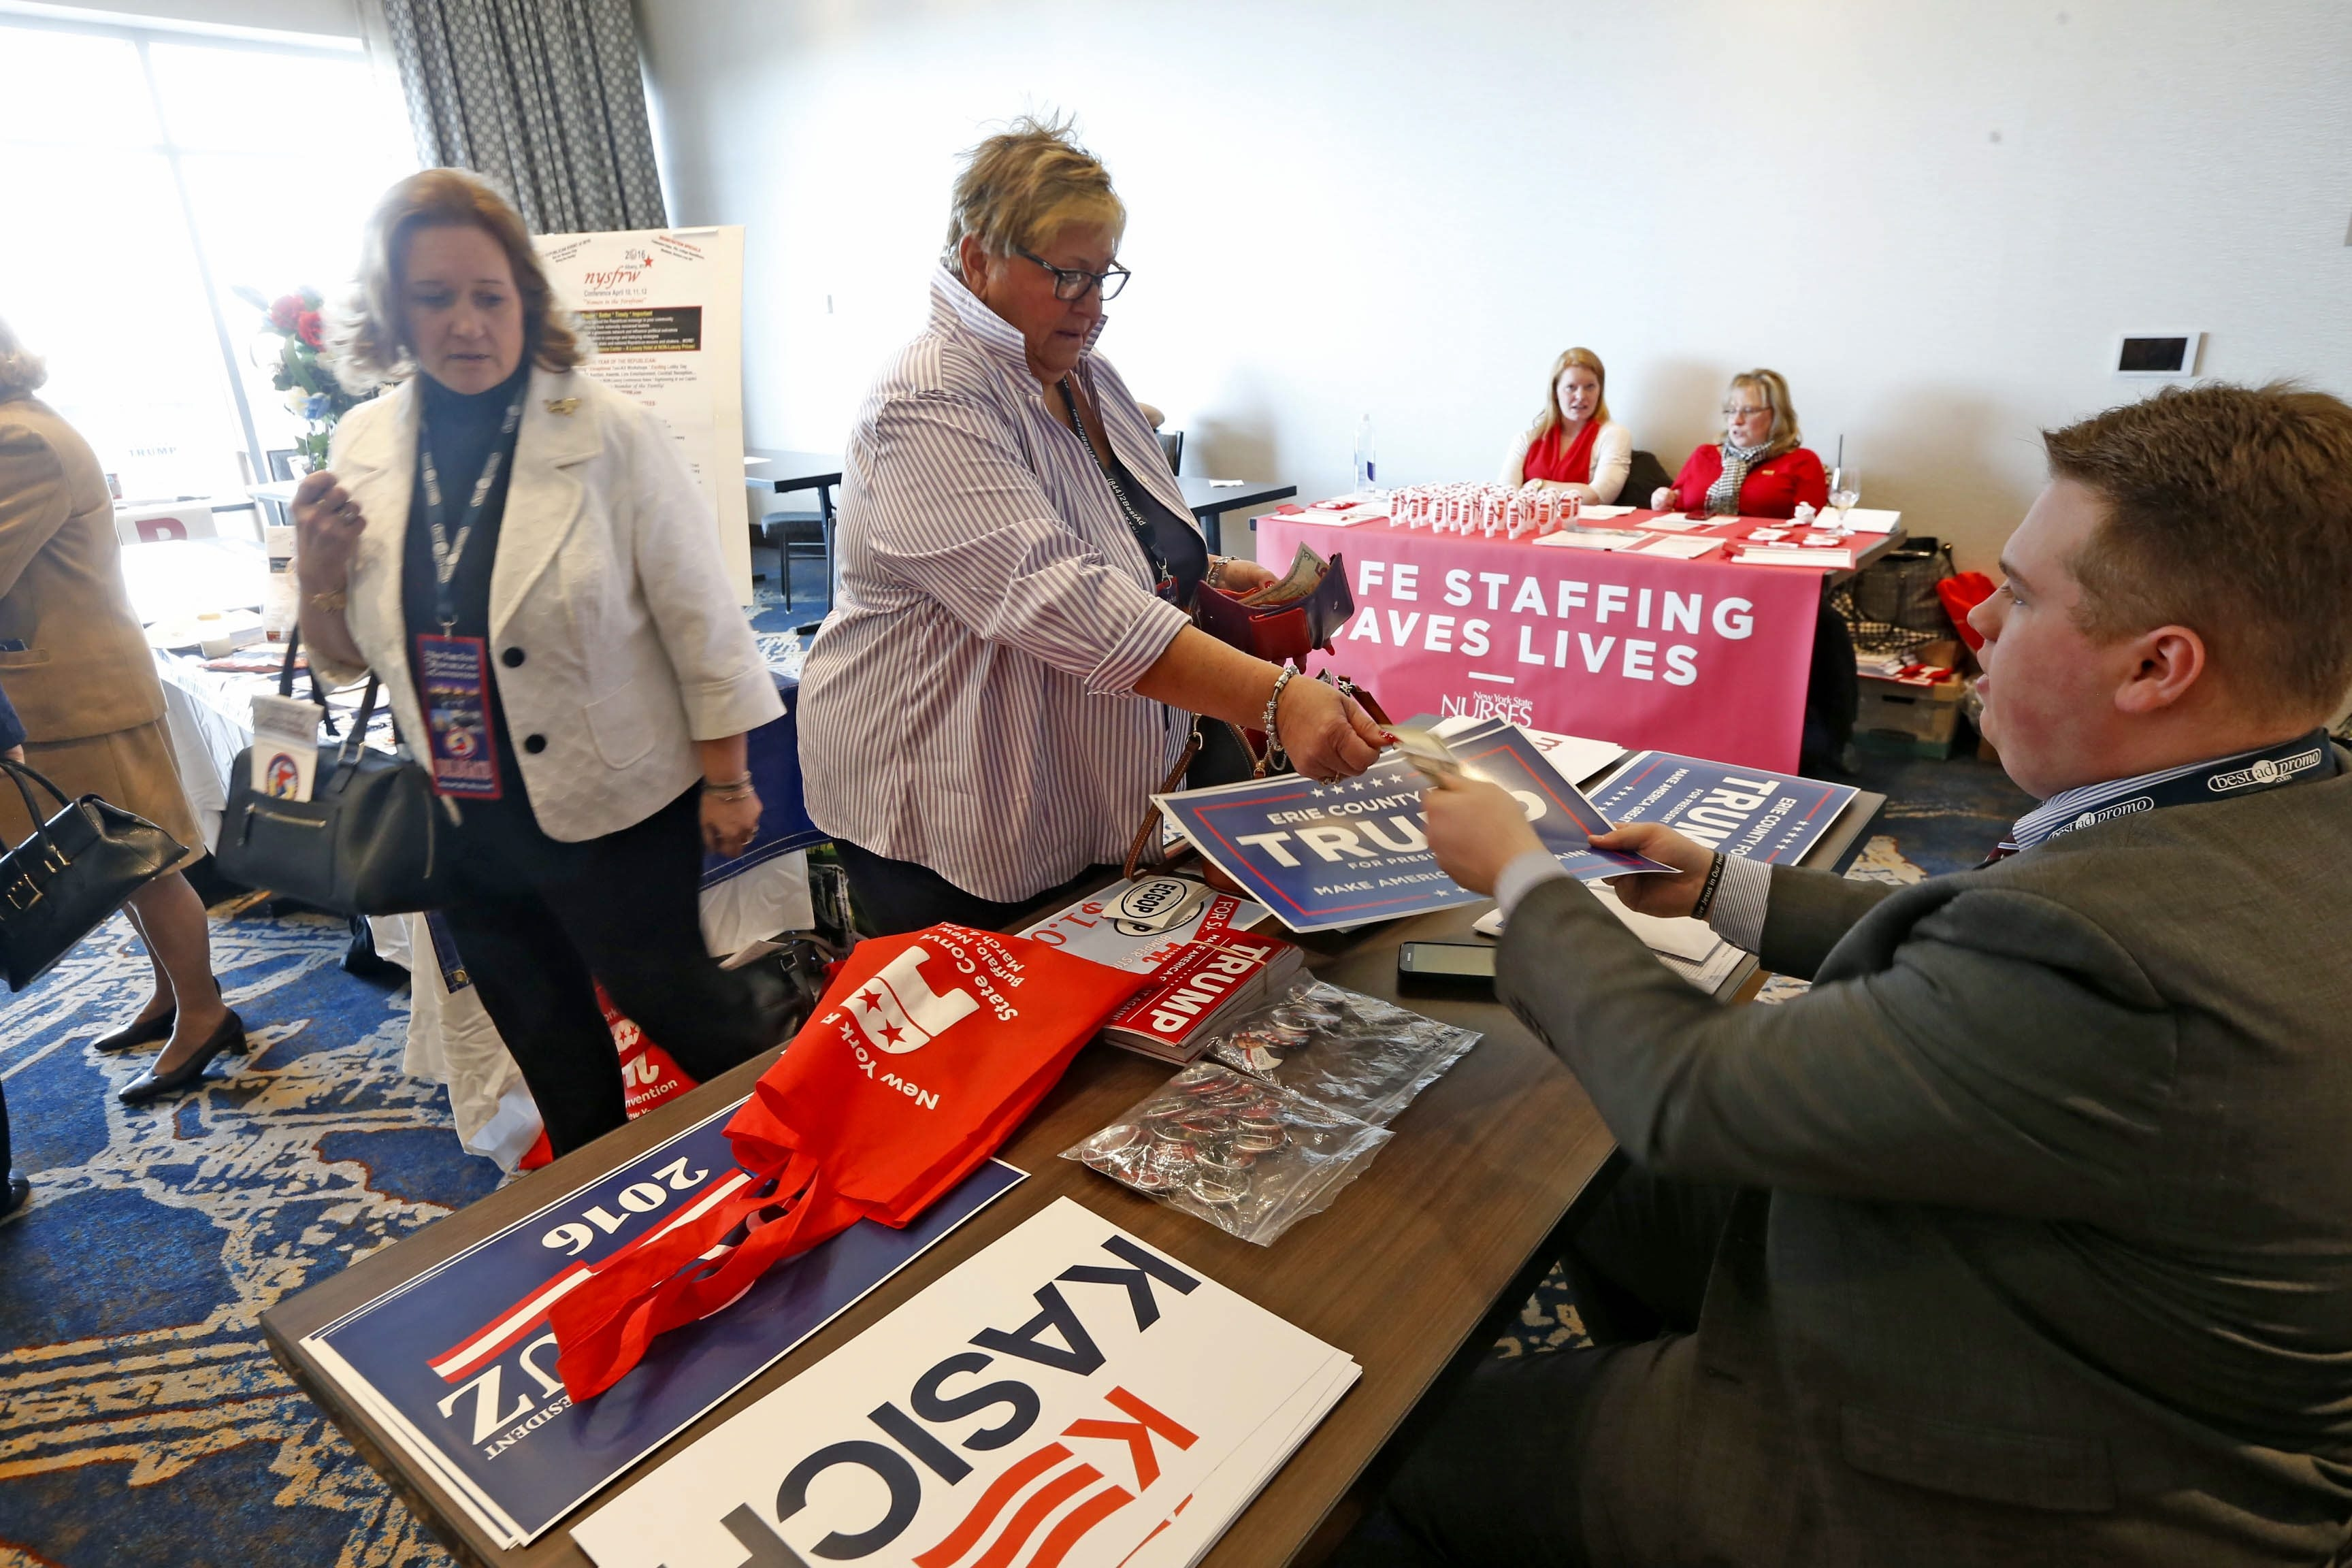 Matt Braun, right, hands a Trump placard to Christine Pilozzi of the City of Tonawanda on Friday as the New York State Republican Convention got underway at the Marriott HarborCenter.